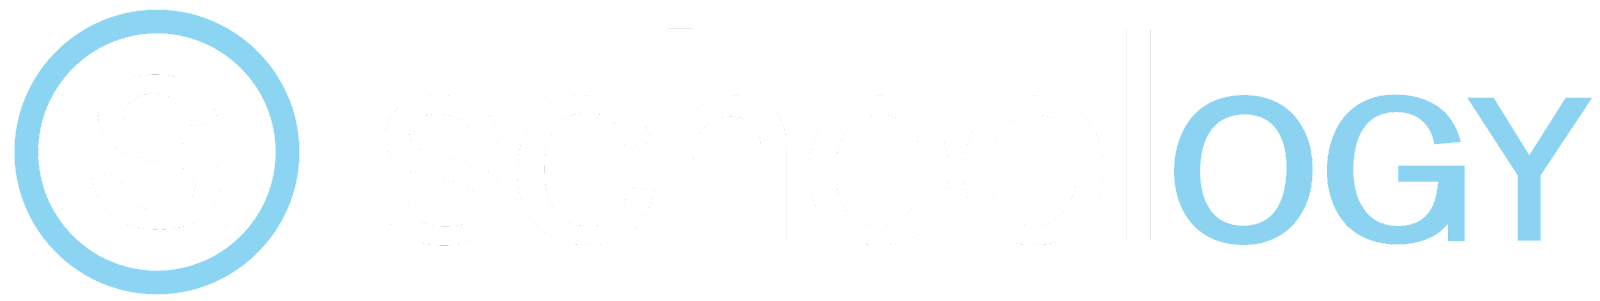 Schoology White Logos no background copy.png